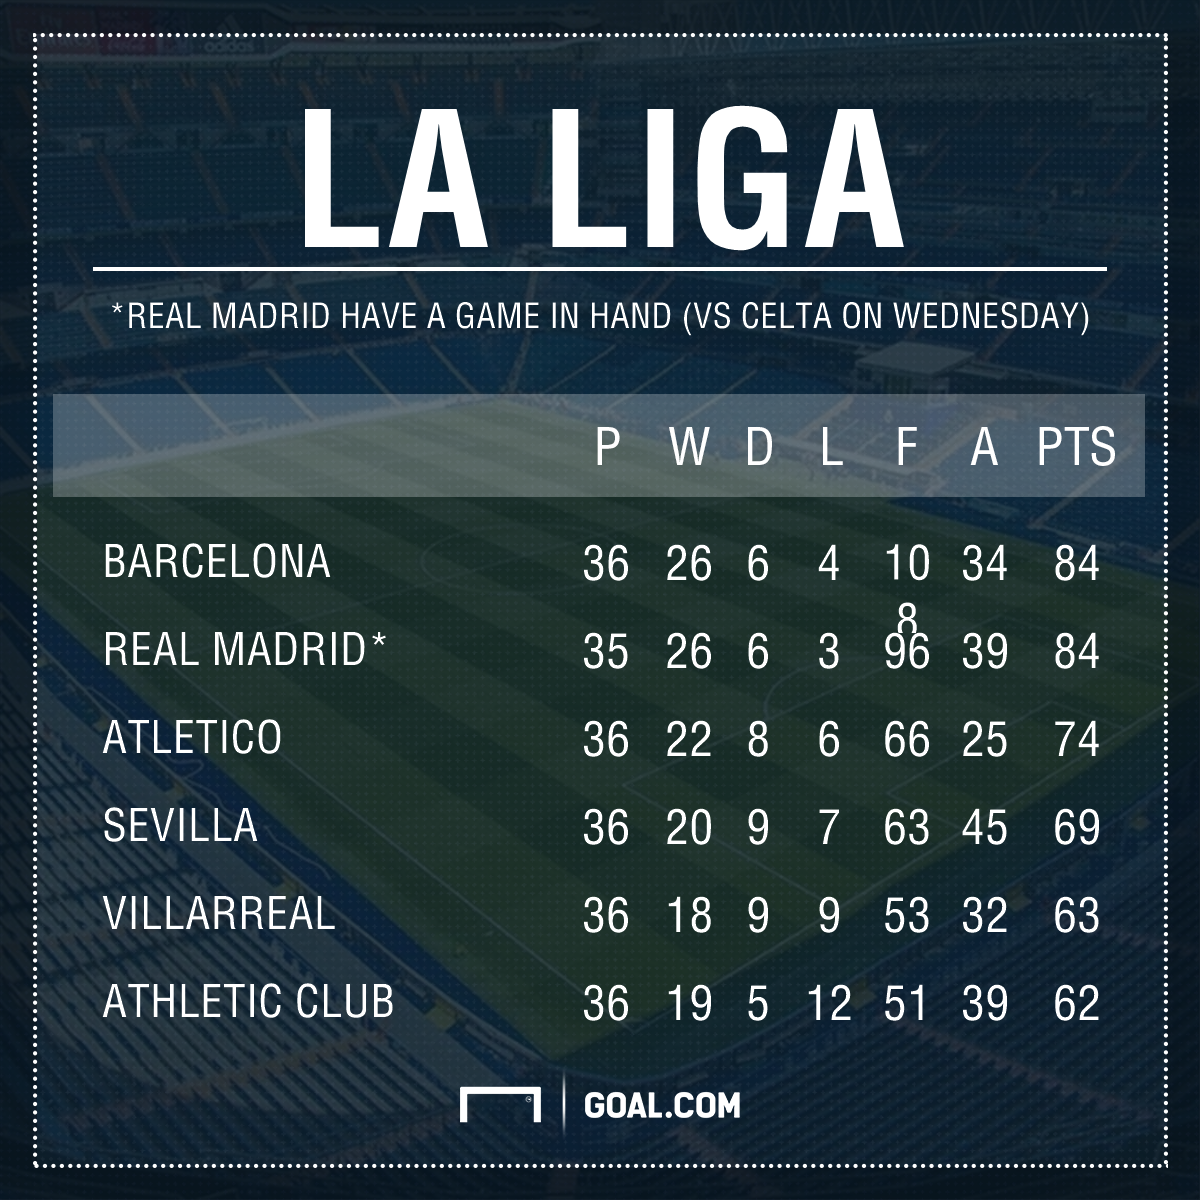 la liga group table